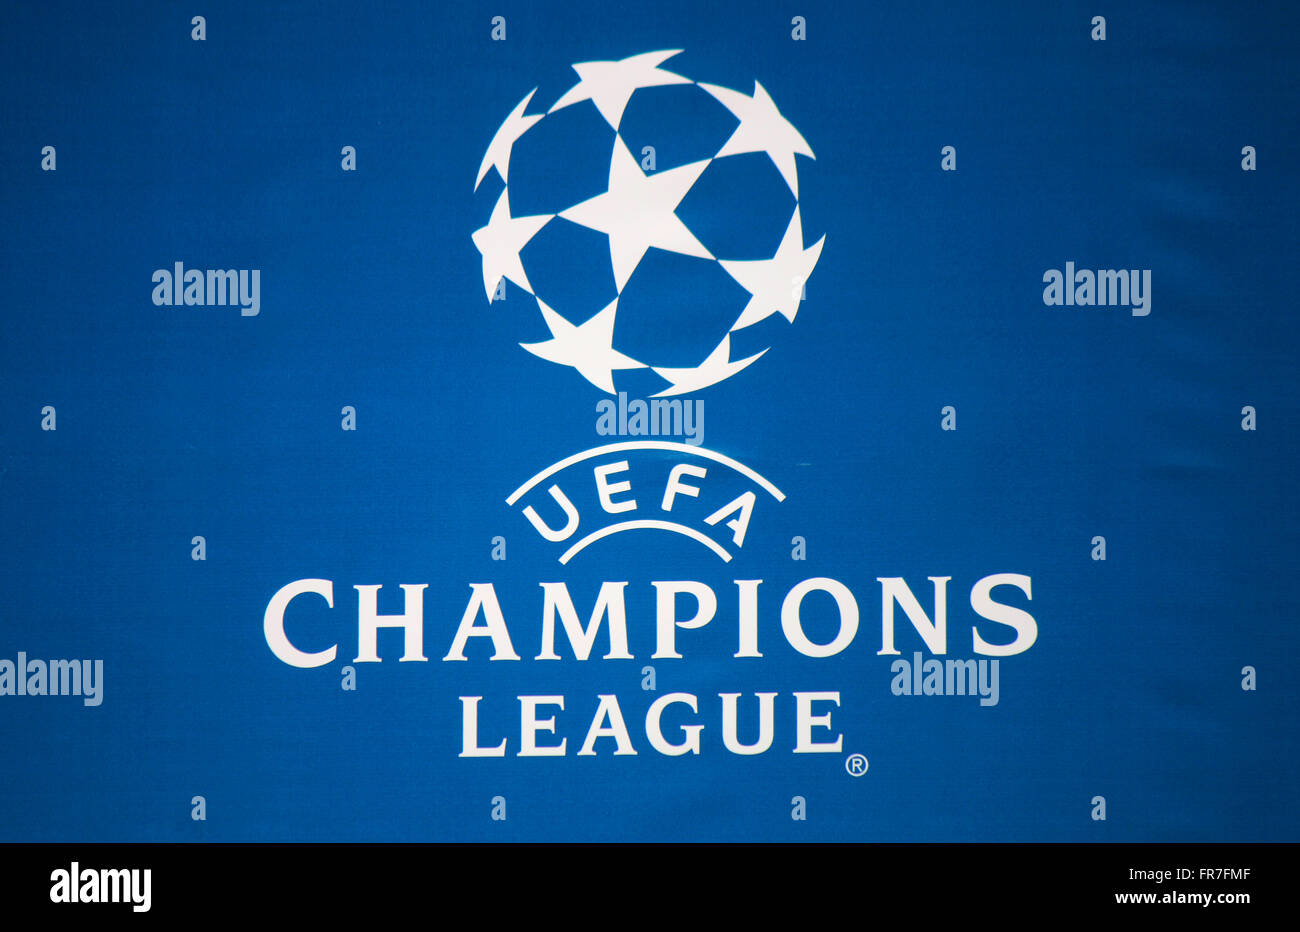 champions league logo high resolution stock photography and images alamy https www alamy com stock photo das logo des fifa champions league finals berlin 100354927 html